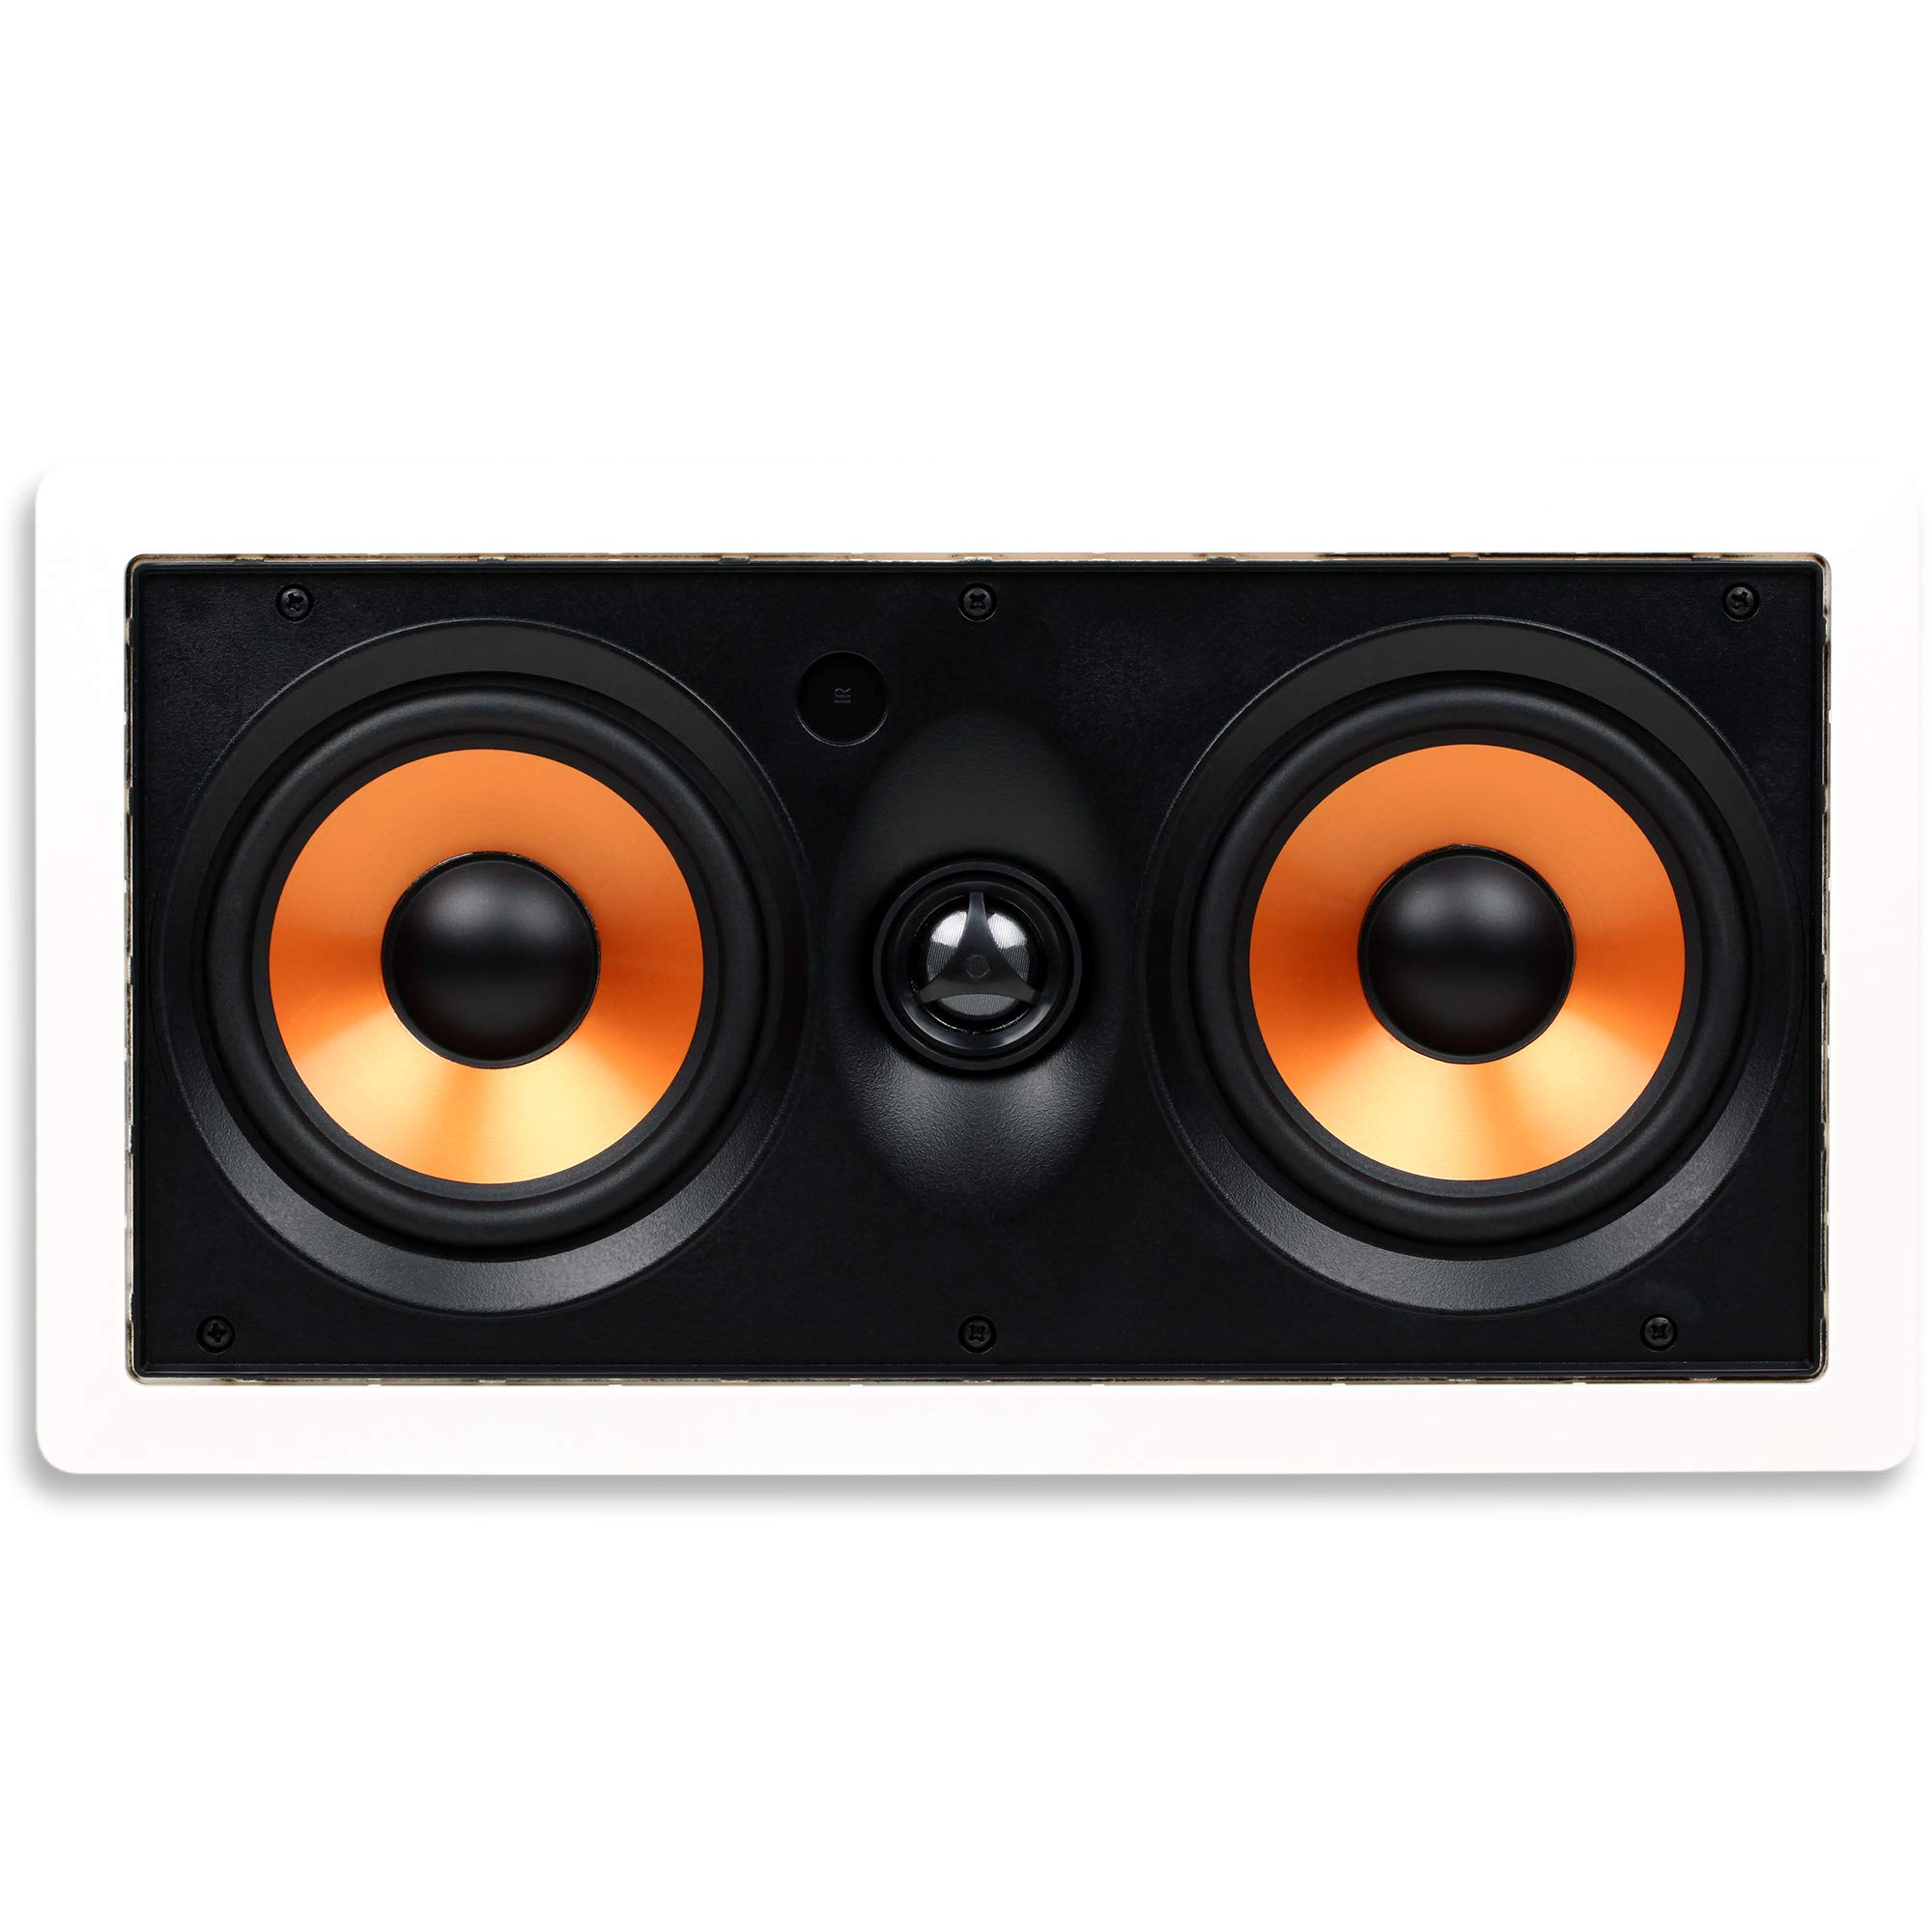 "Micca M-CS Dual 5.25 Inch 2-Way MTM in-Wall Speaker with Pivoting 1"" Silk Dome Tweeter (Each, White)"